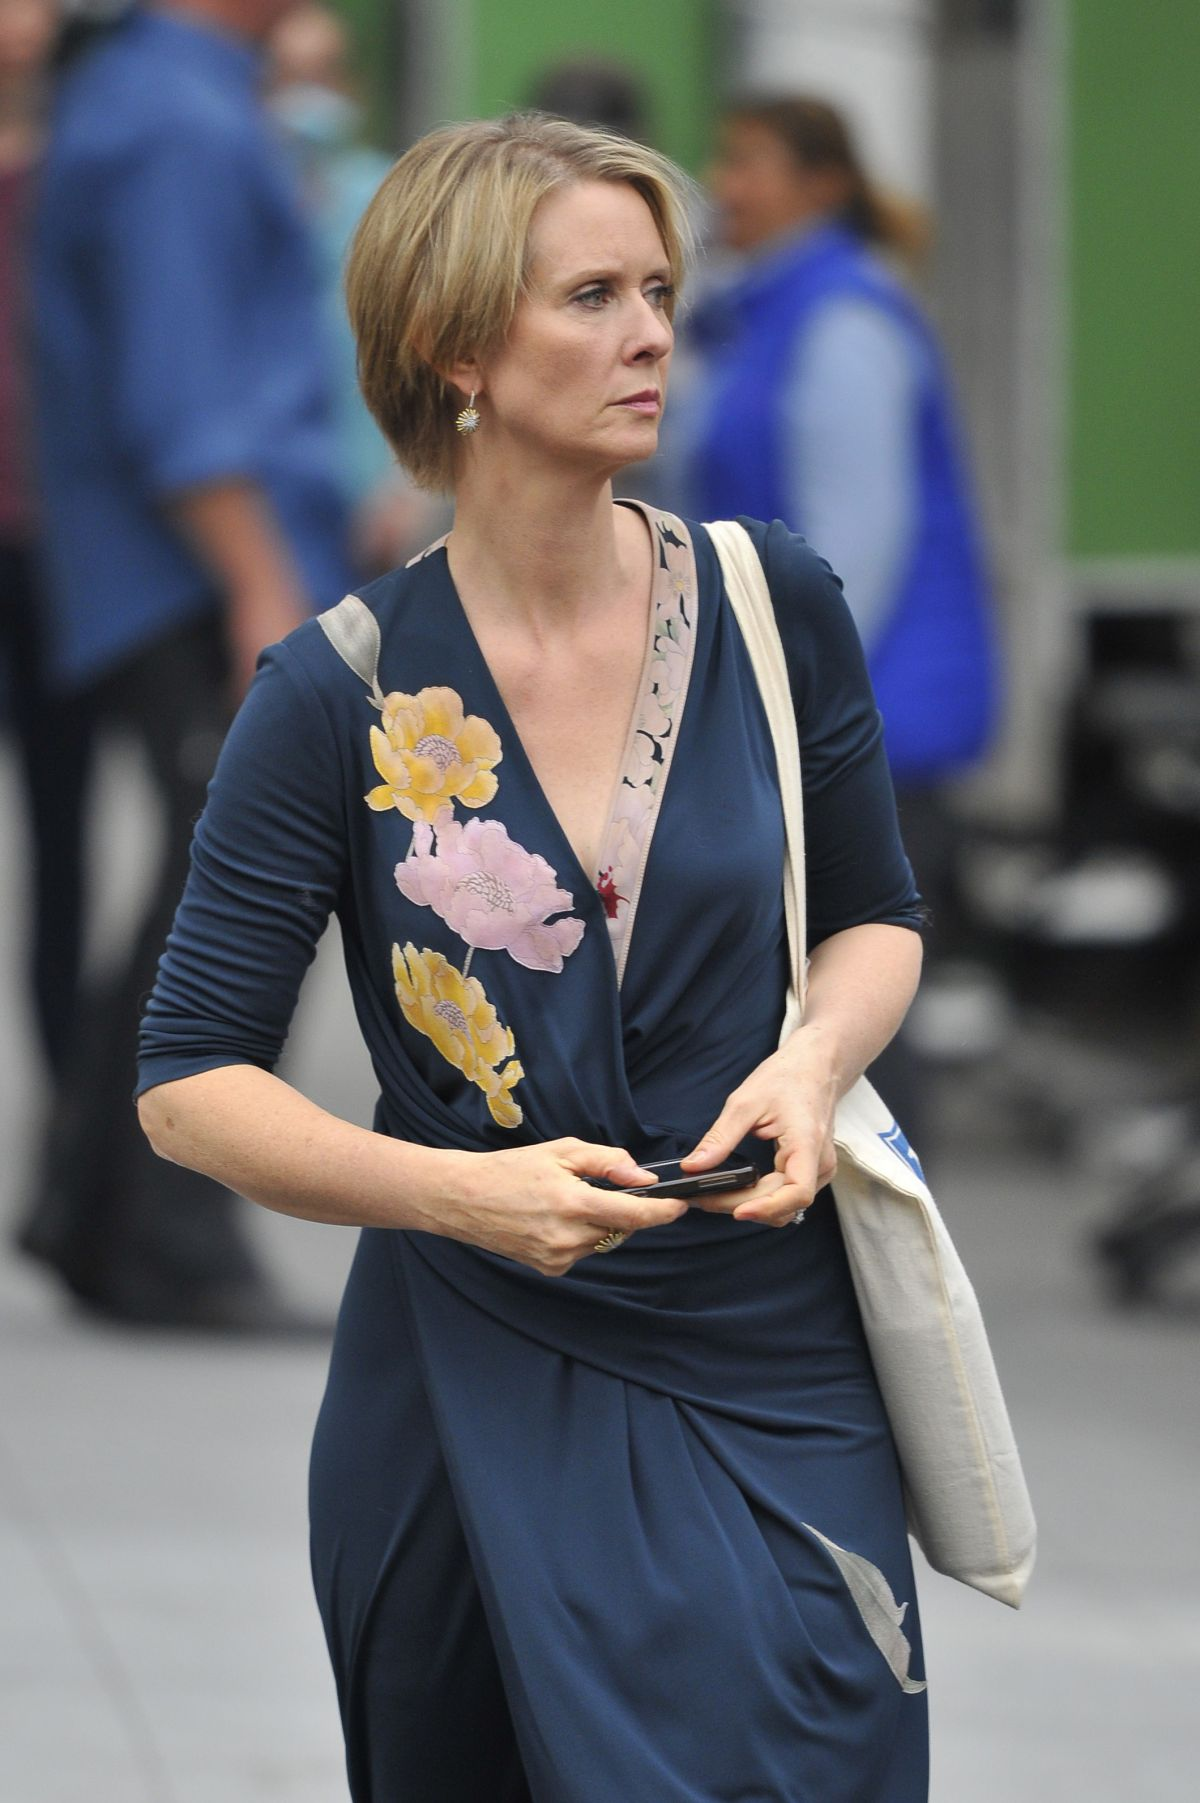 cynthia nixon - photo #21